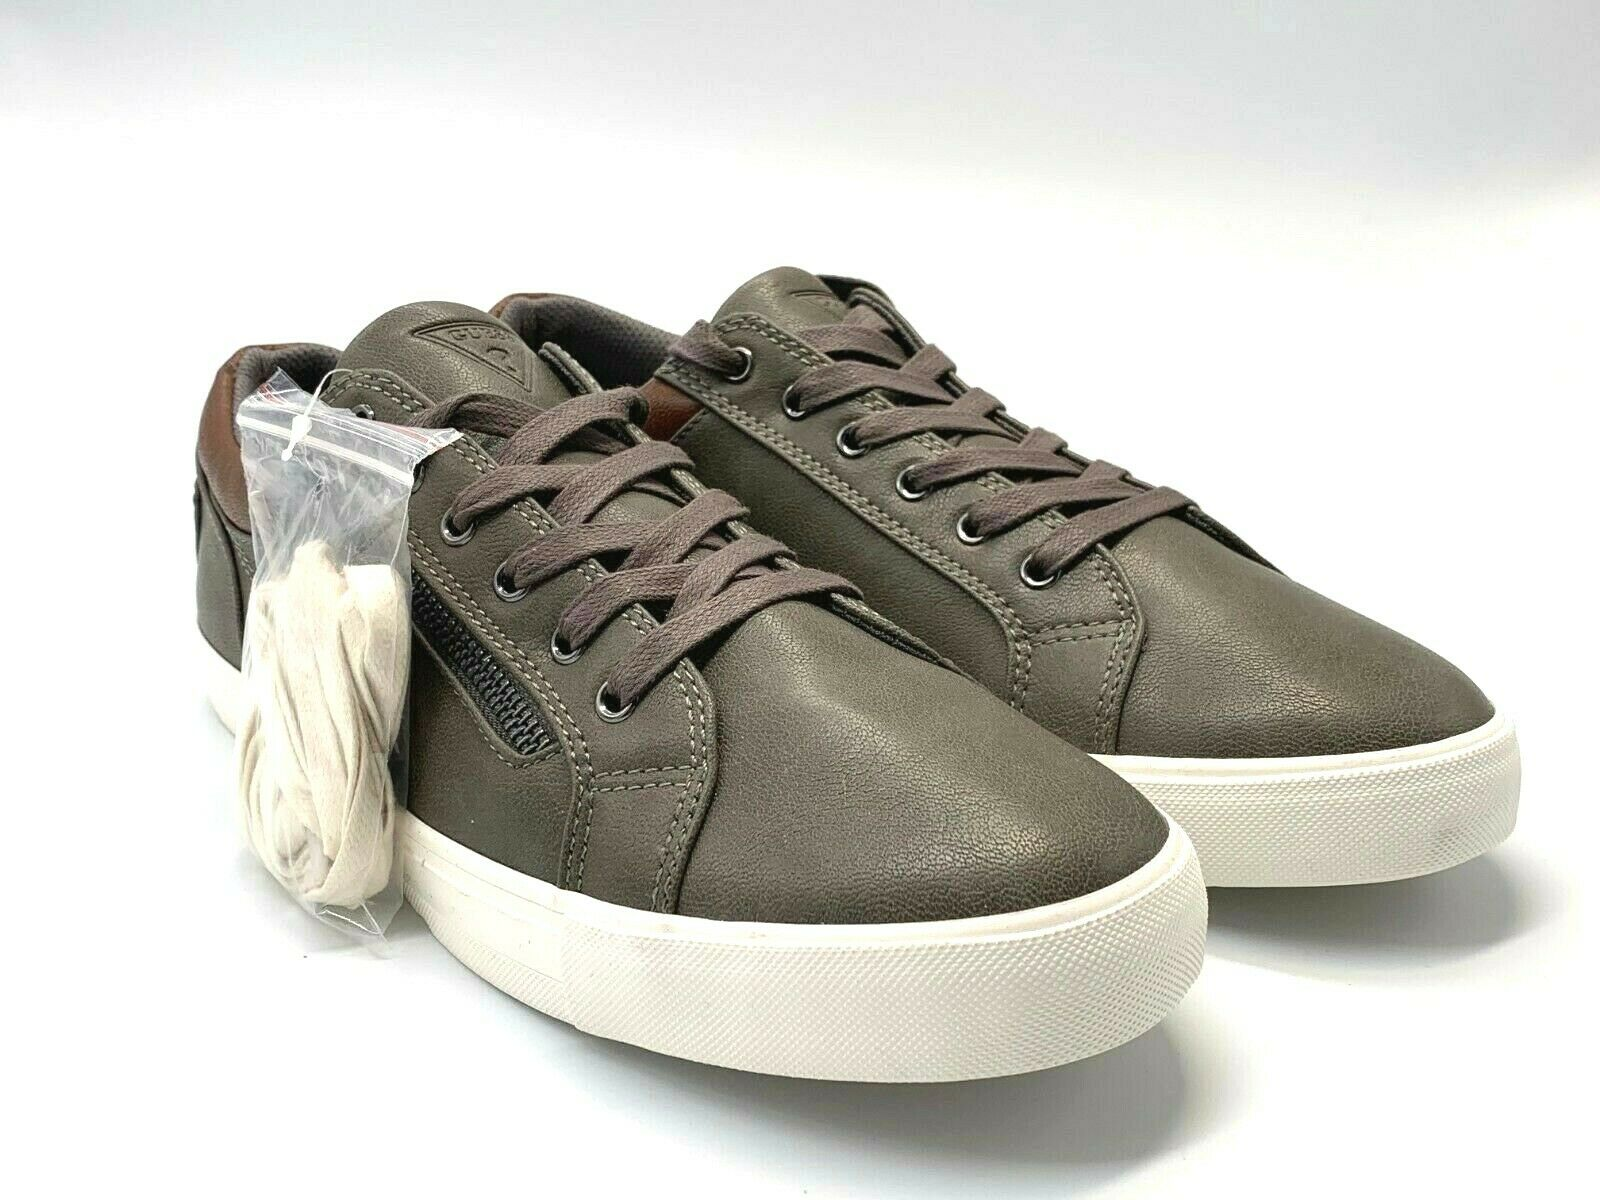 New Guess Men's grey leather sneakers  size 10.5